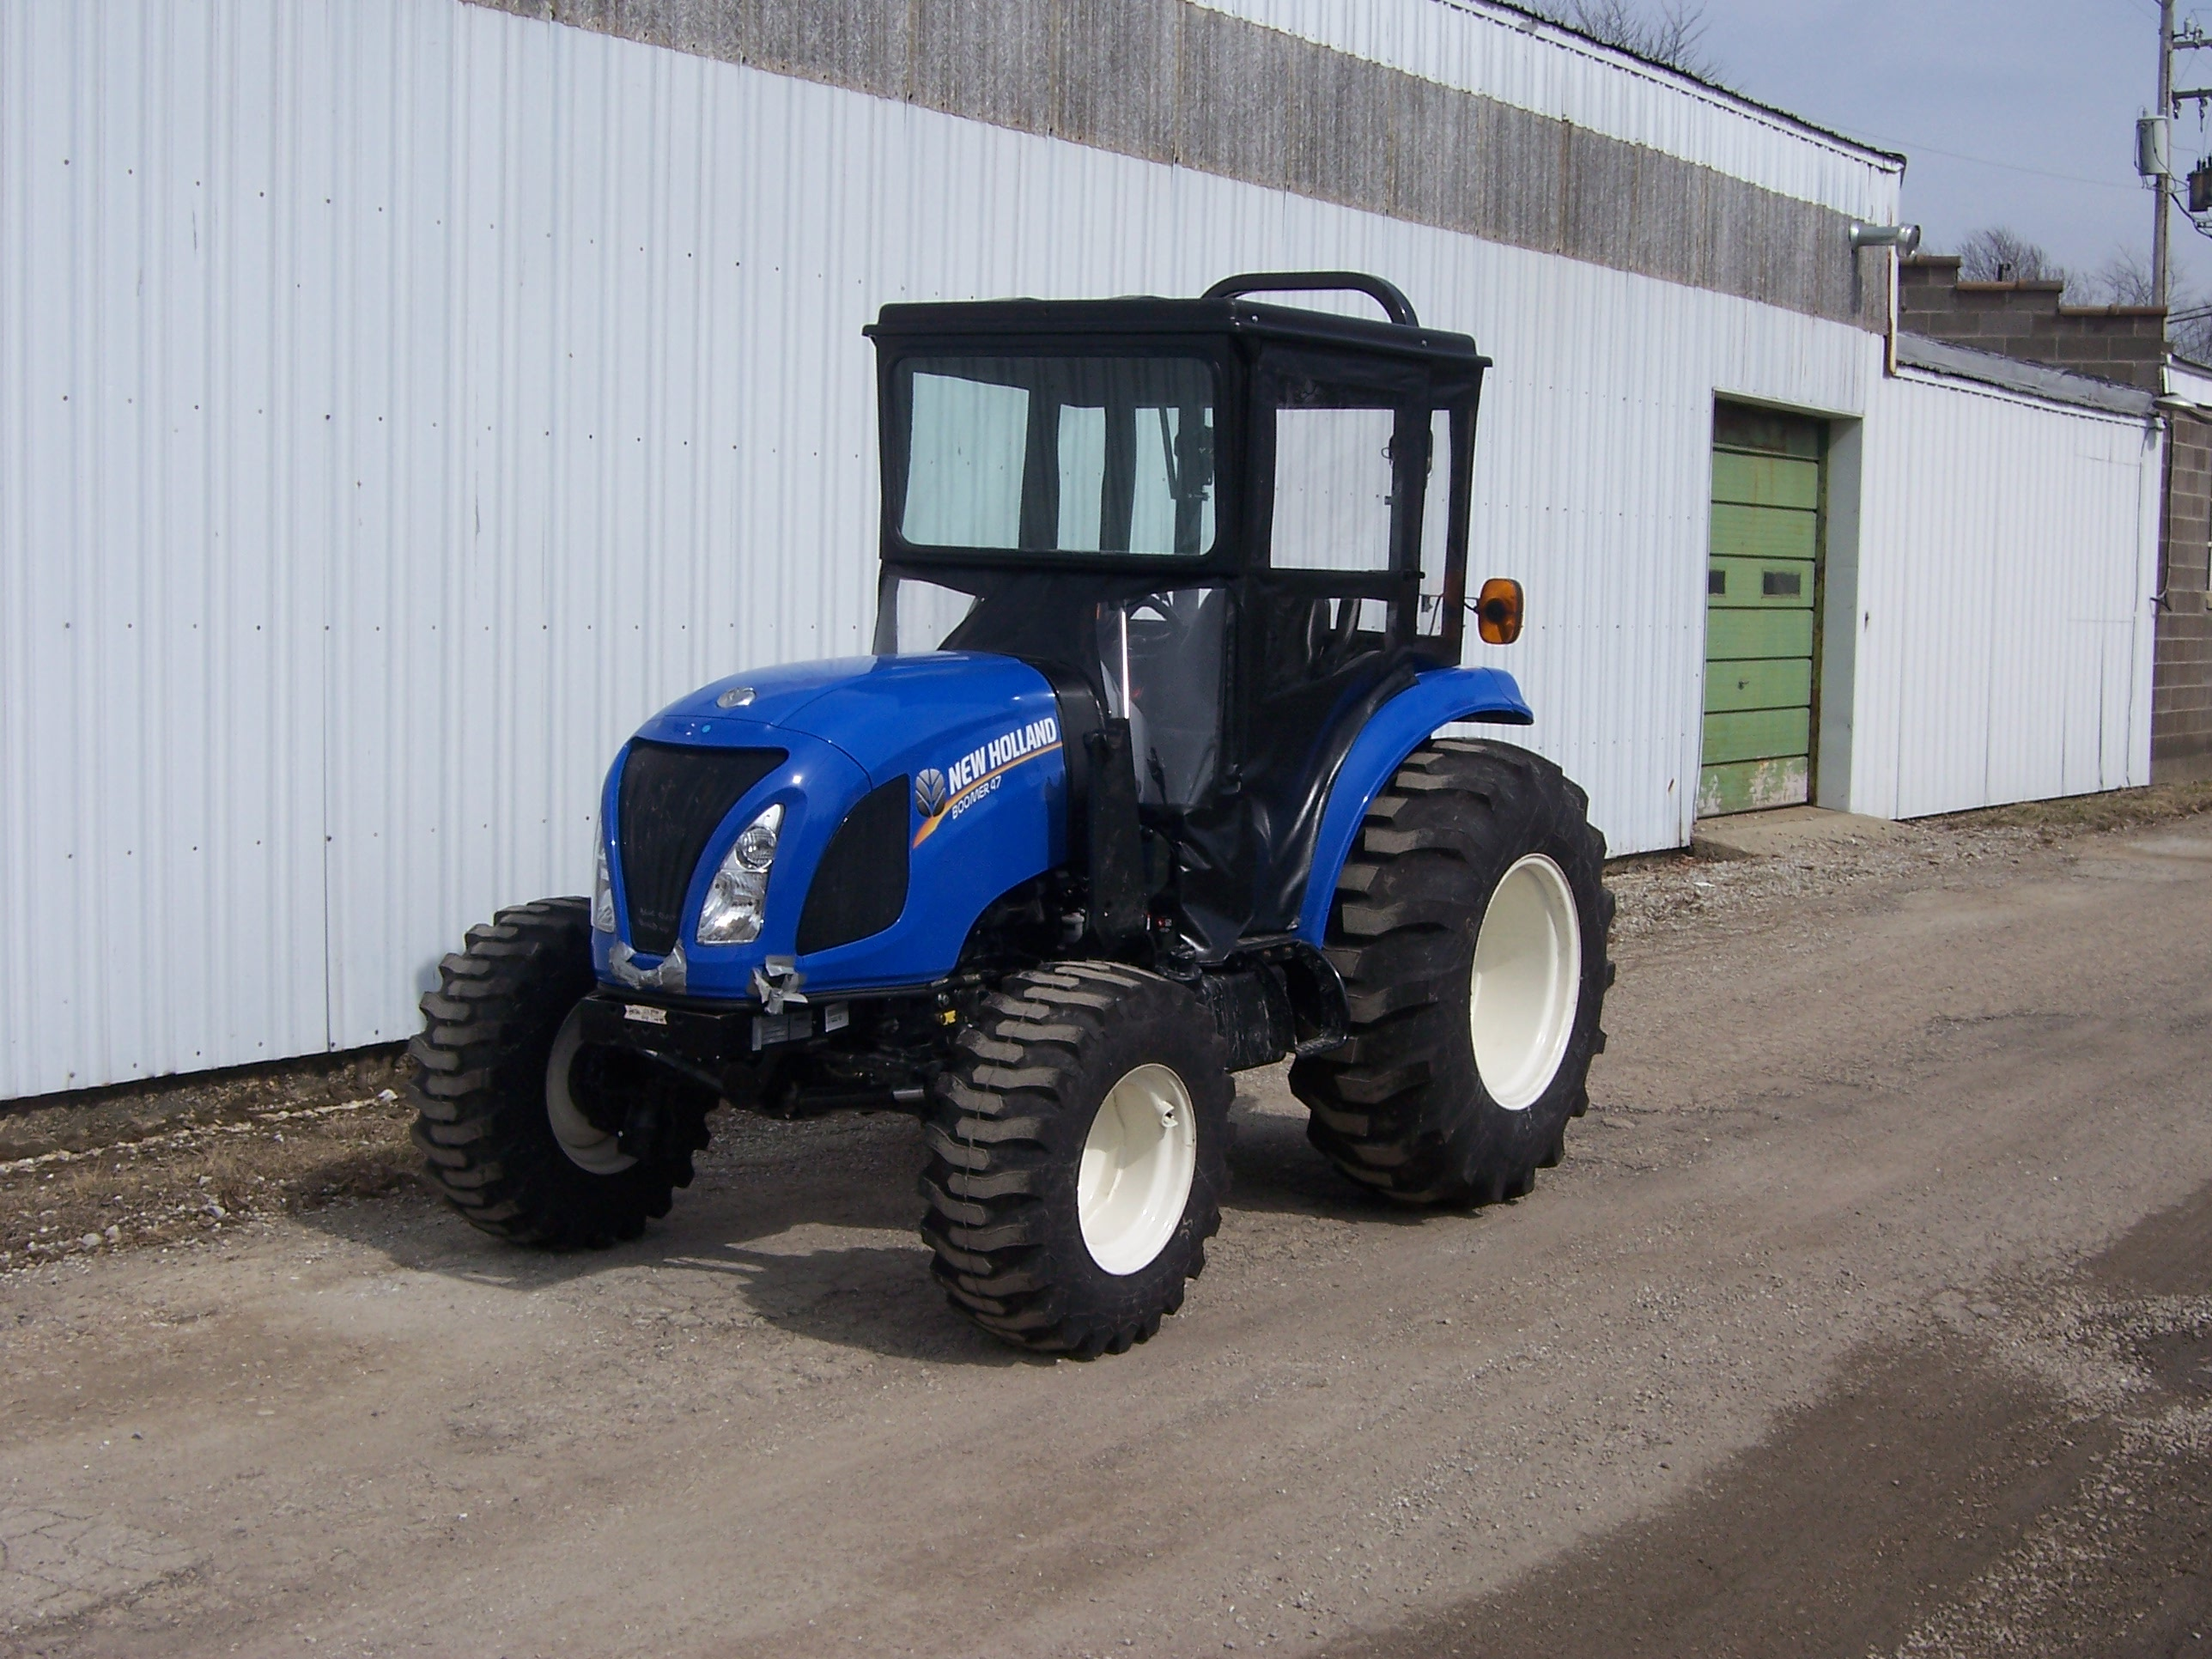 Original Tractor Cab For New Holland Boomer 33, 37, 41, 47 and Farmall 30C, 35C, 40C, and 50C